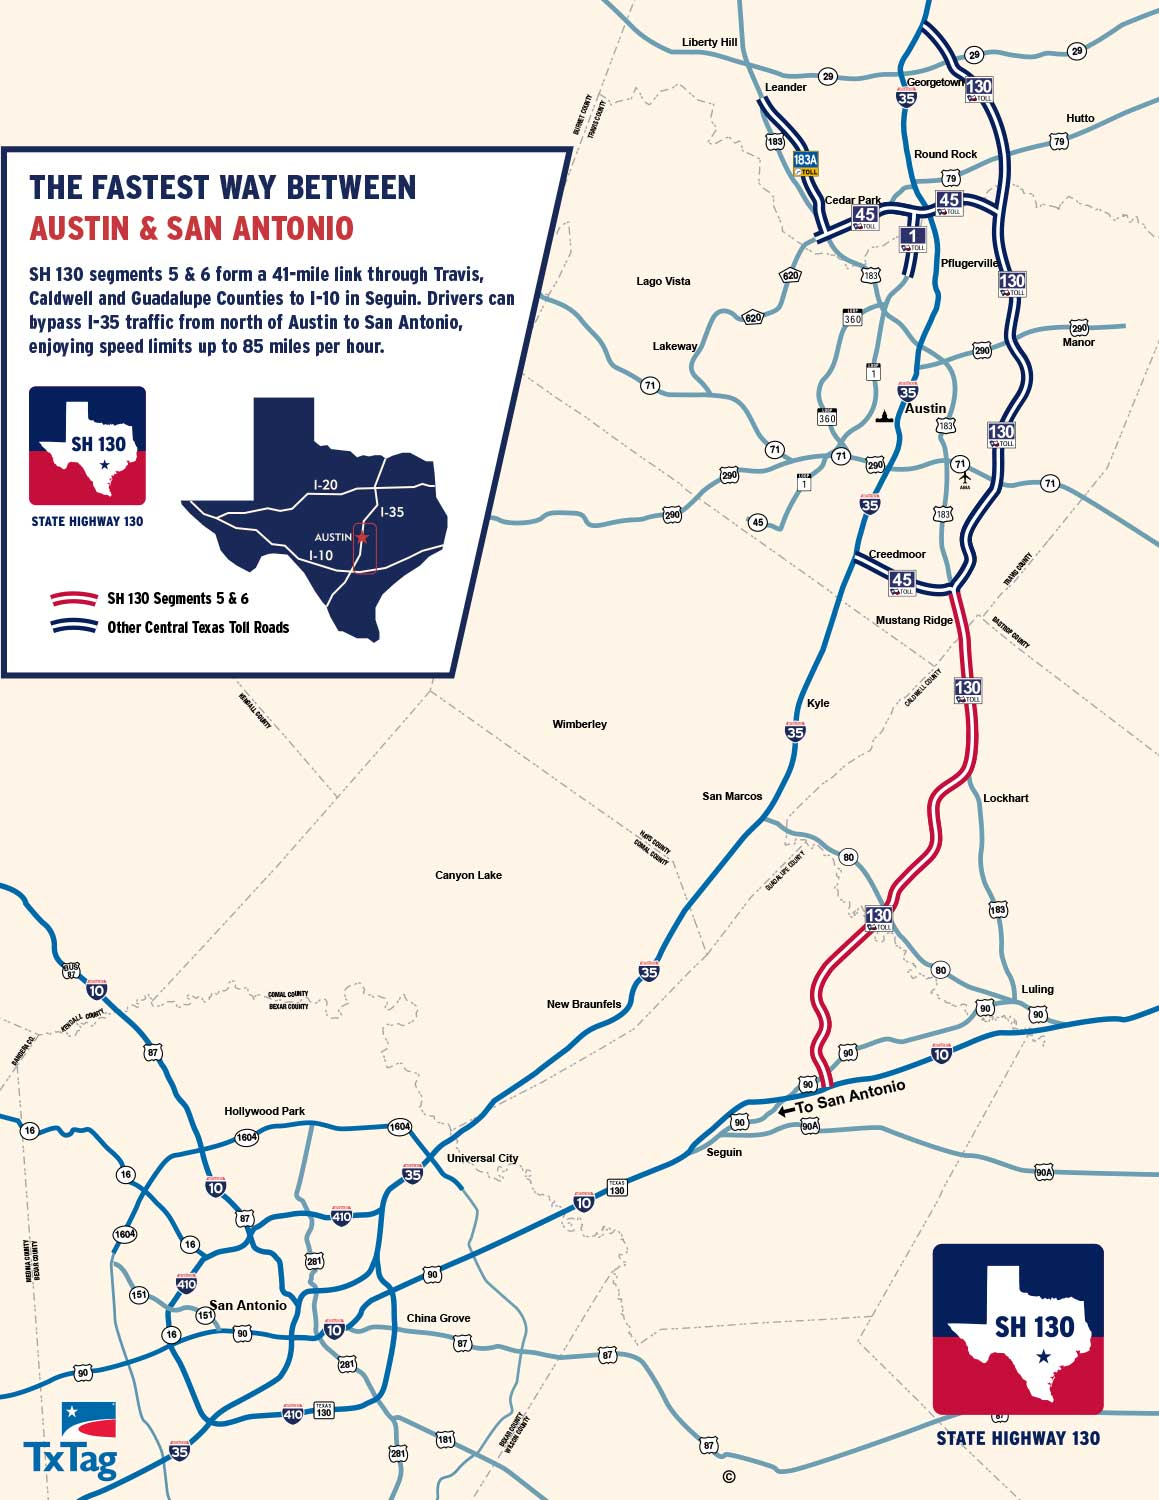 State Highway 130 Maps - SH 130 The fastest way between Austin & San on indian gap texas map, southern coast of texas map, wesley texas map, austin map, jody texas map, st. hedwig texas map, new braunsfels texas map, leander texas map, fredericksburg map, volente texas map, mckinney falls state park texas map, spencer texas map, liberty hill texas map, geronimo texas map, barry texas map, san antonio map, kyle tx, kildare texas map, southern tip of texas map, houston map,